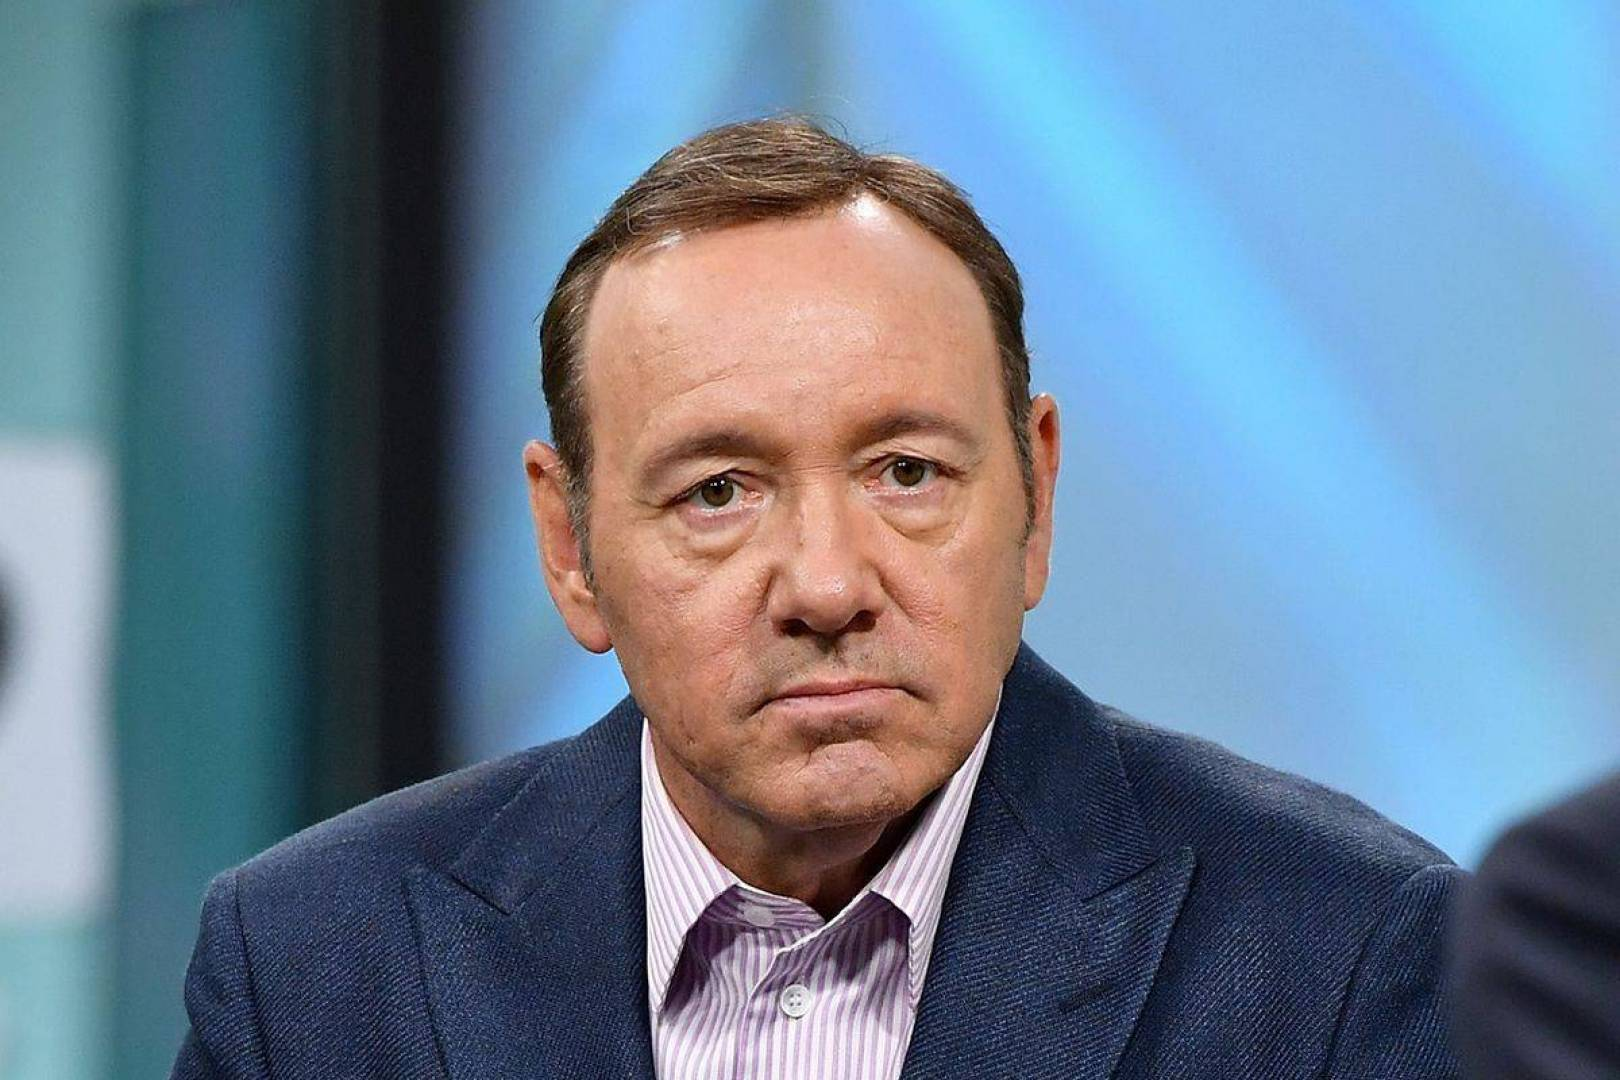 Kevin Spacey back on social media with cryptic video for 'kindness'